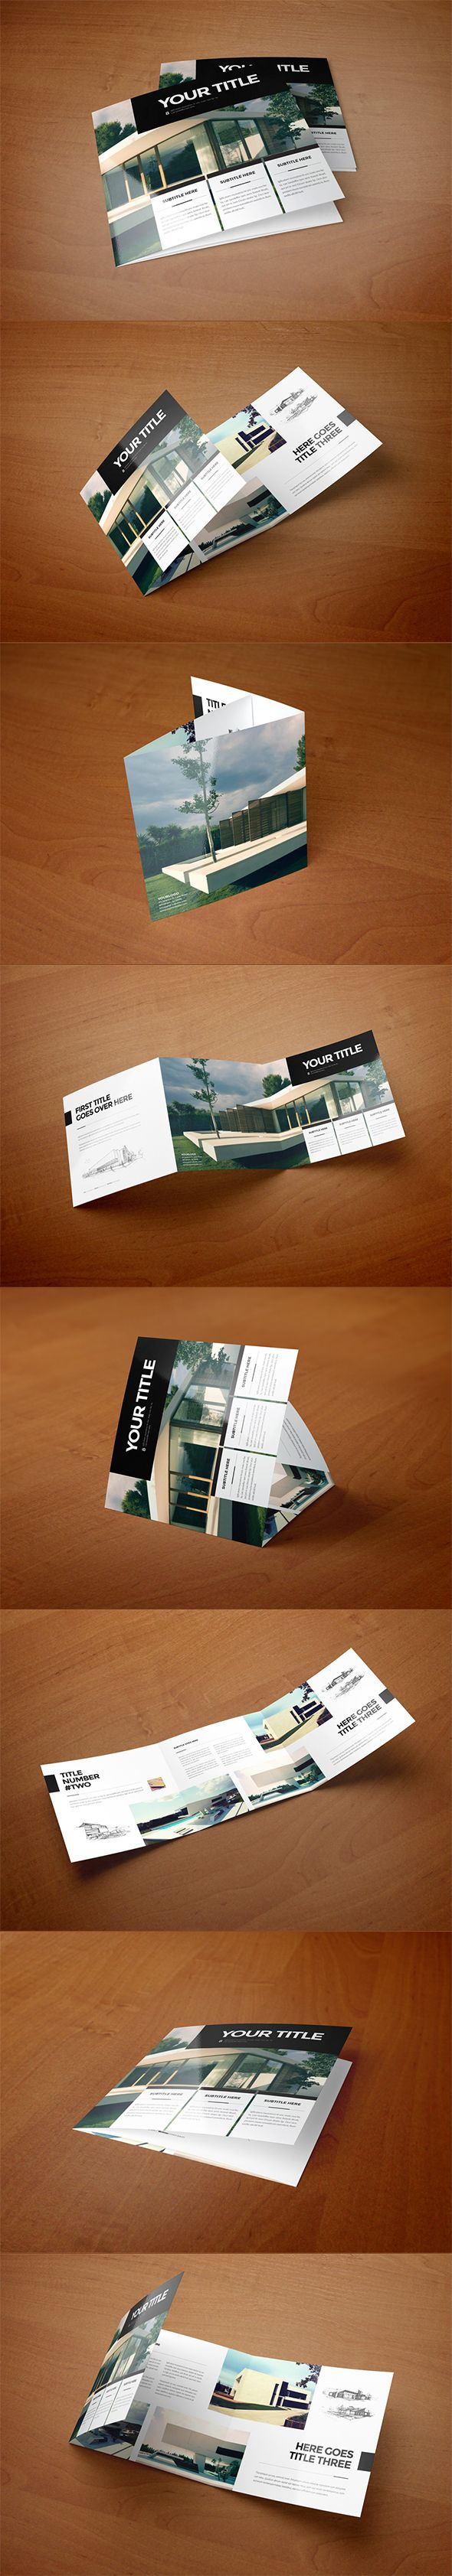 Square Minimal Architecture Trifold on Behance